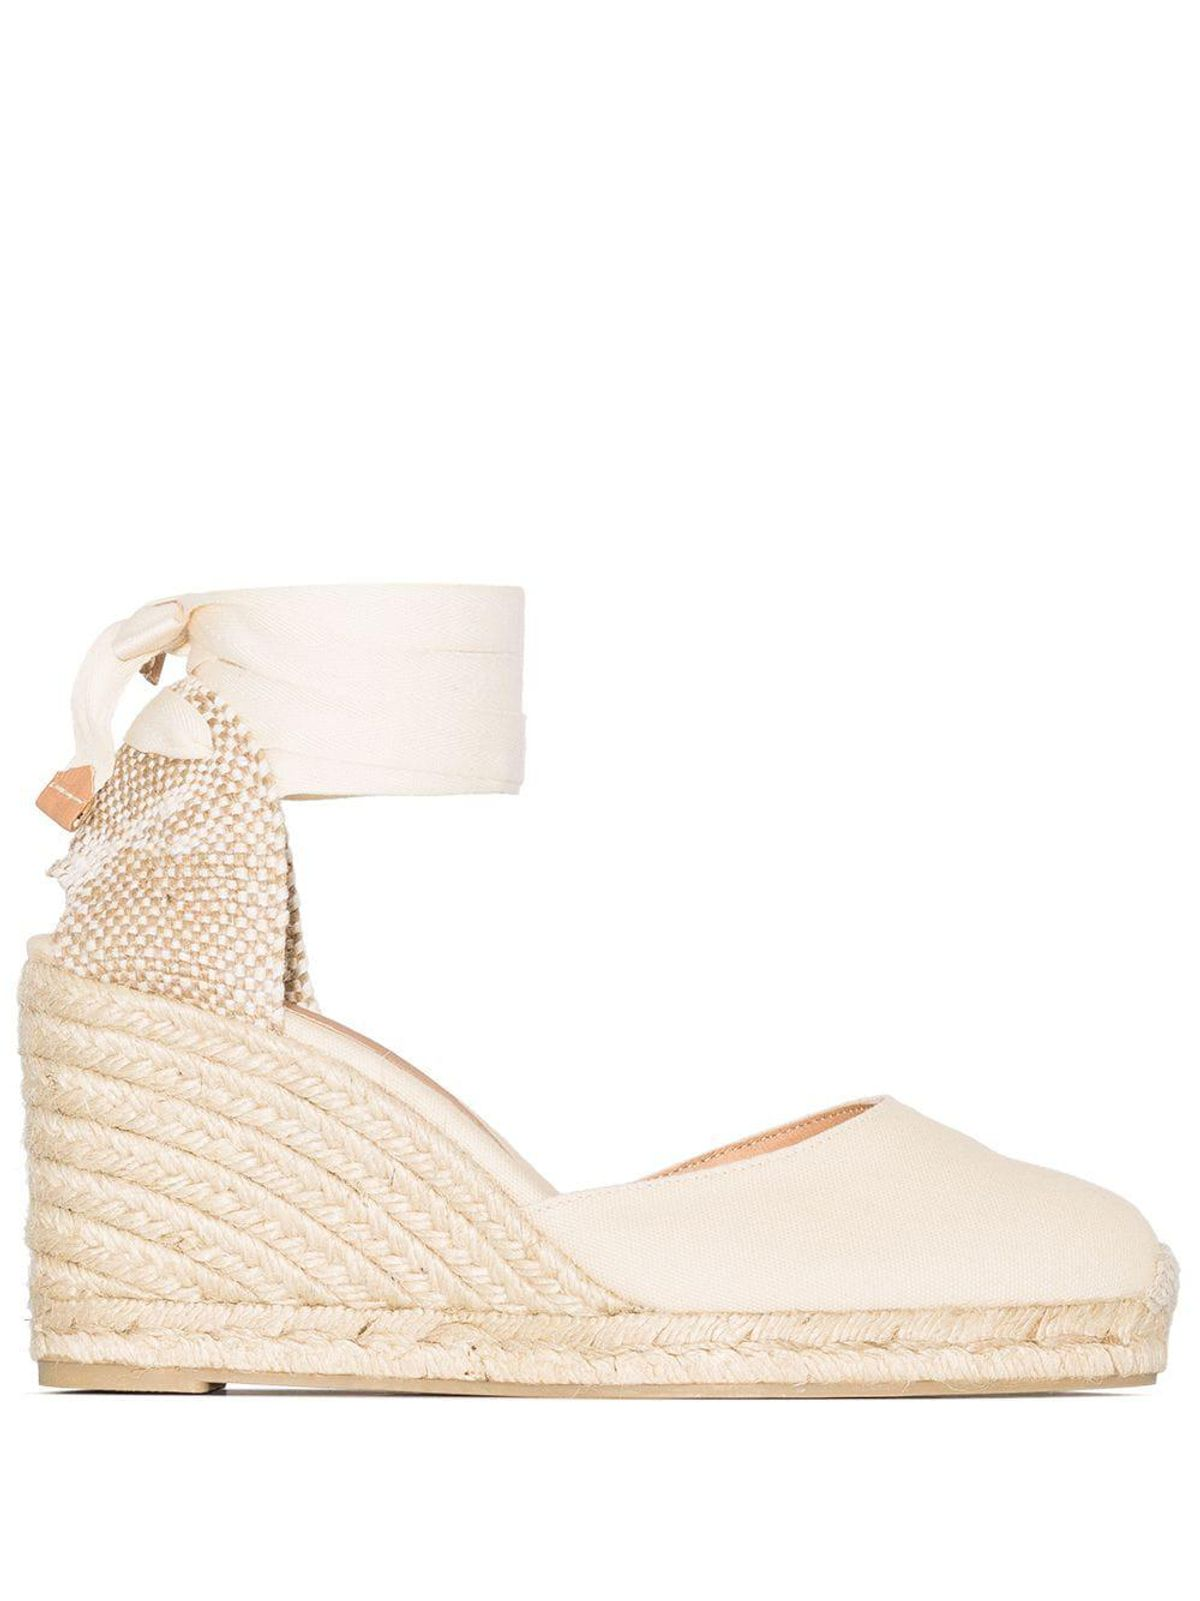 Carina 80mm Ankle Tie Wedge Sandals